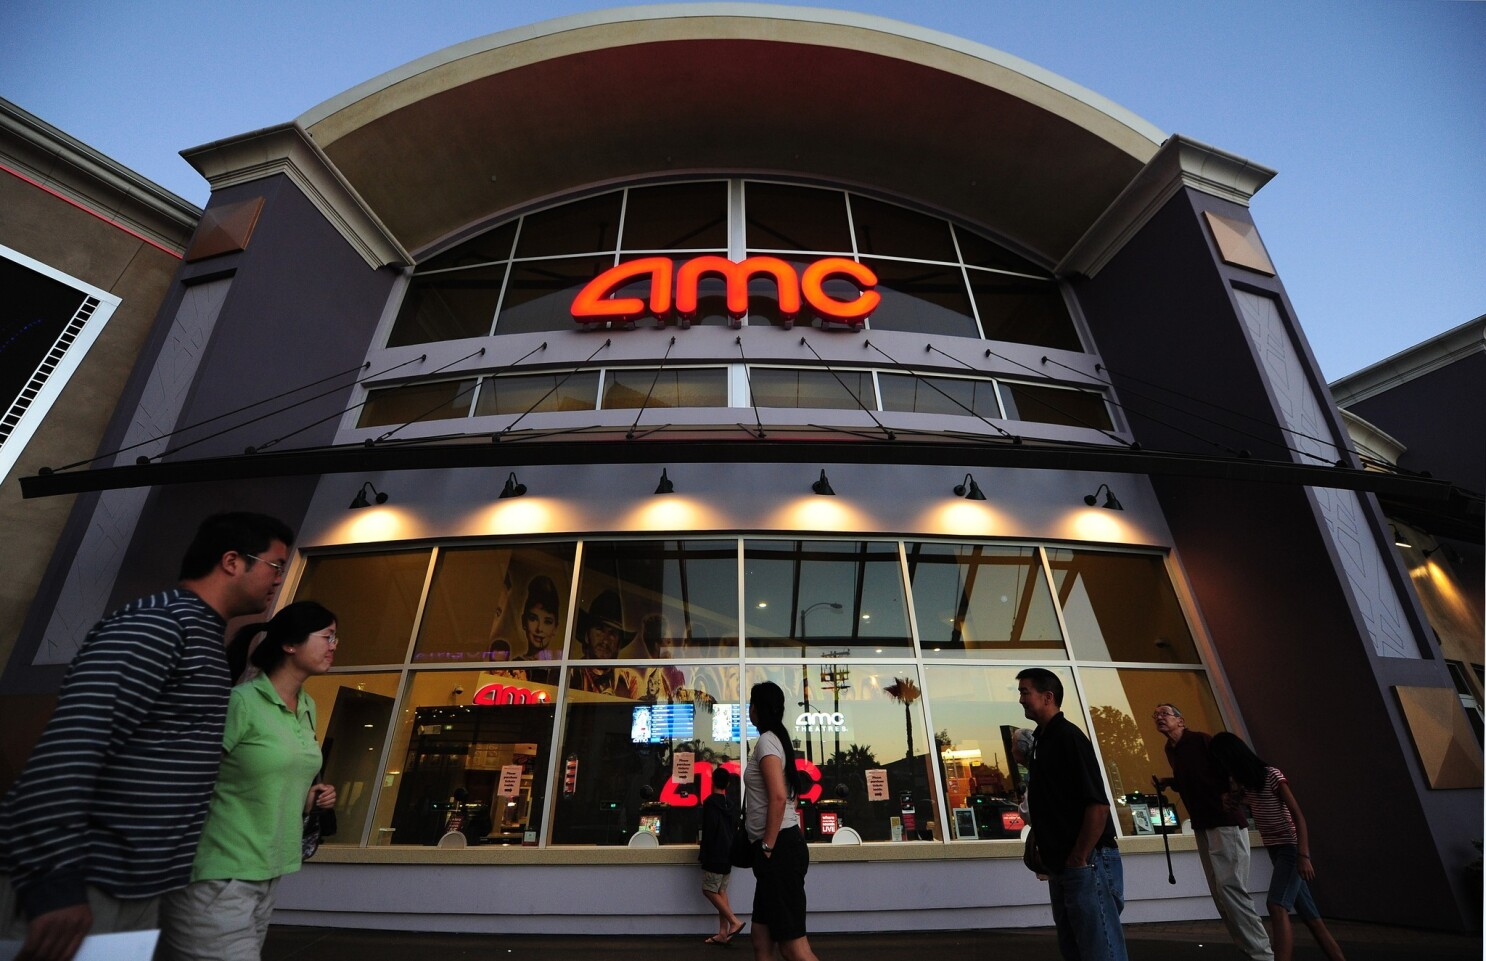 Amc Movie Theaters Why 15 Cent Tickets Could Be Dangerous Los Angeles Times